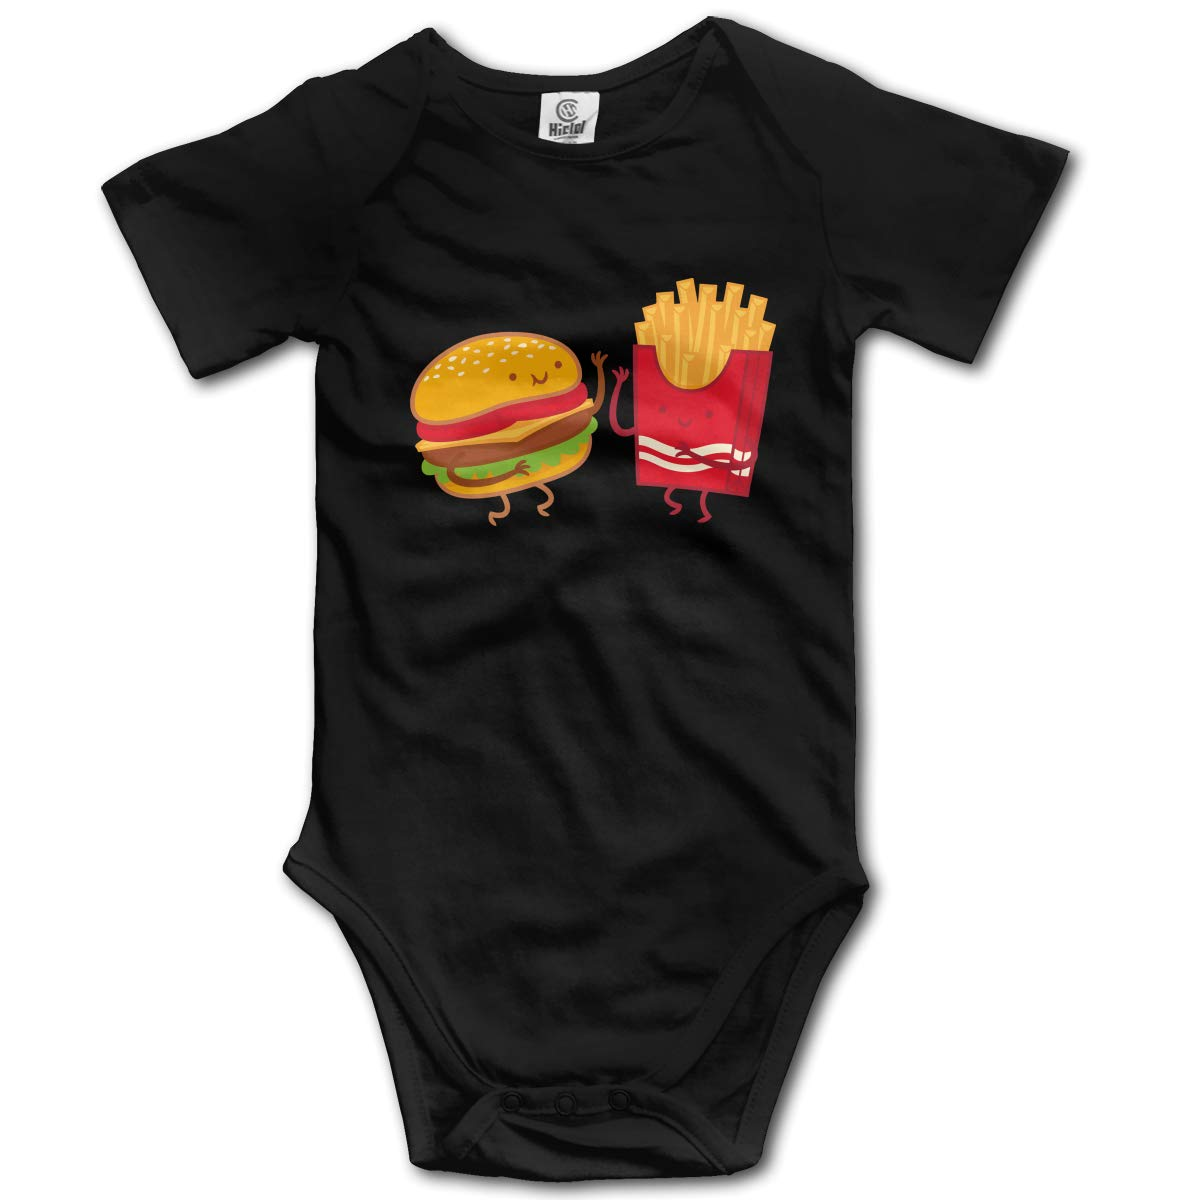 Unisex Solid Baby Short Sleeve Jumpsuit Outfit 0-2T CDHL99 Burger and Fries 2